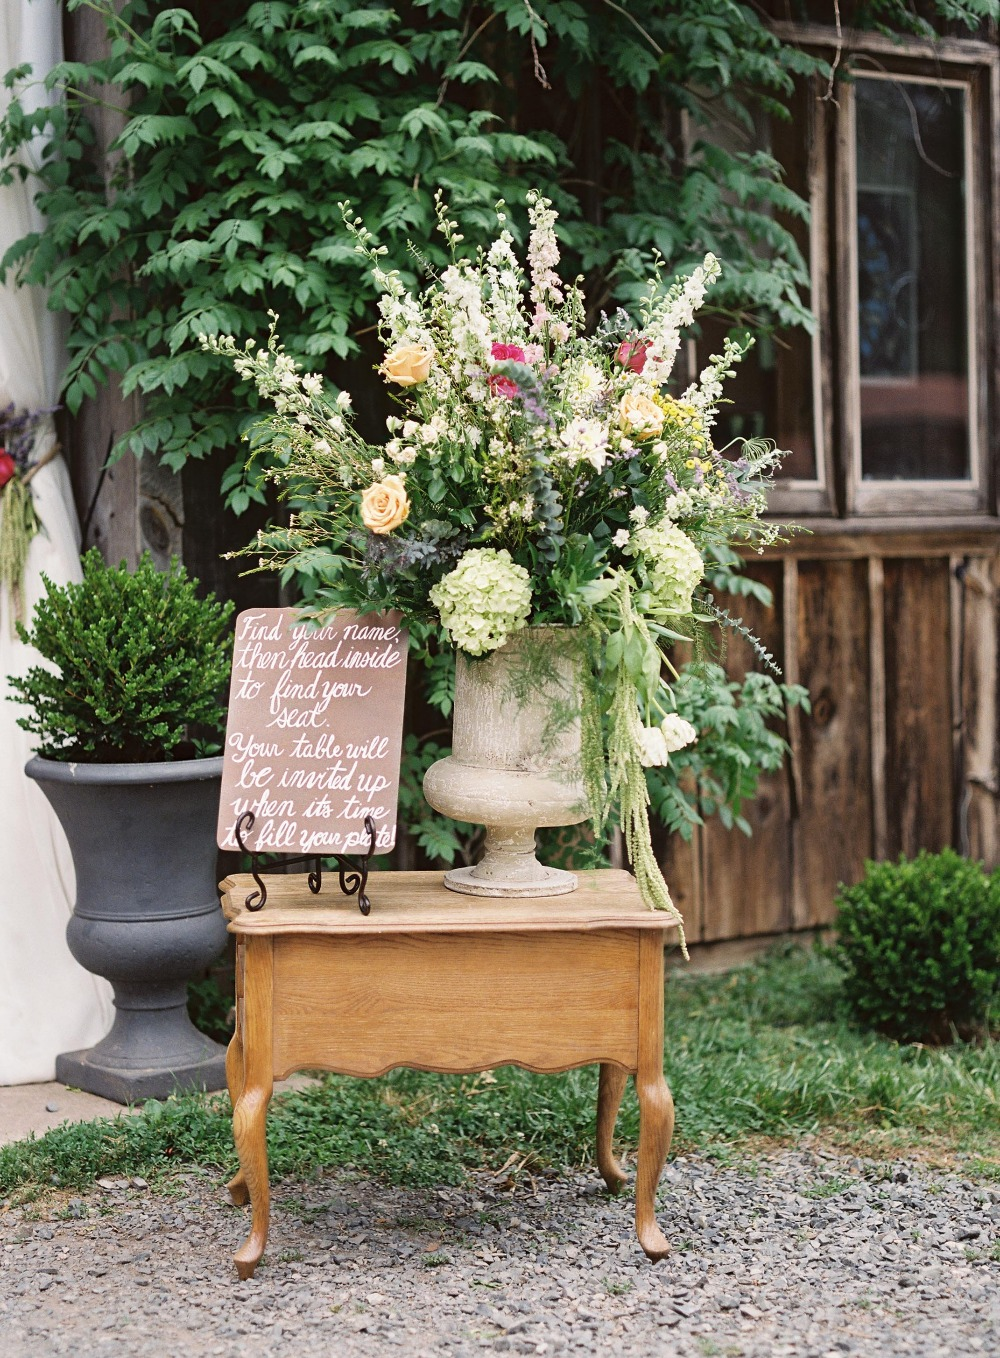 Giant florals and wedding sign